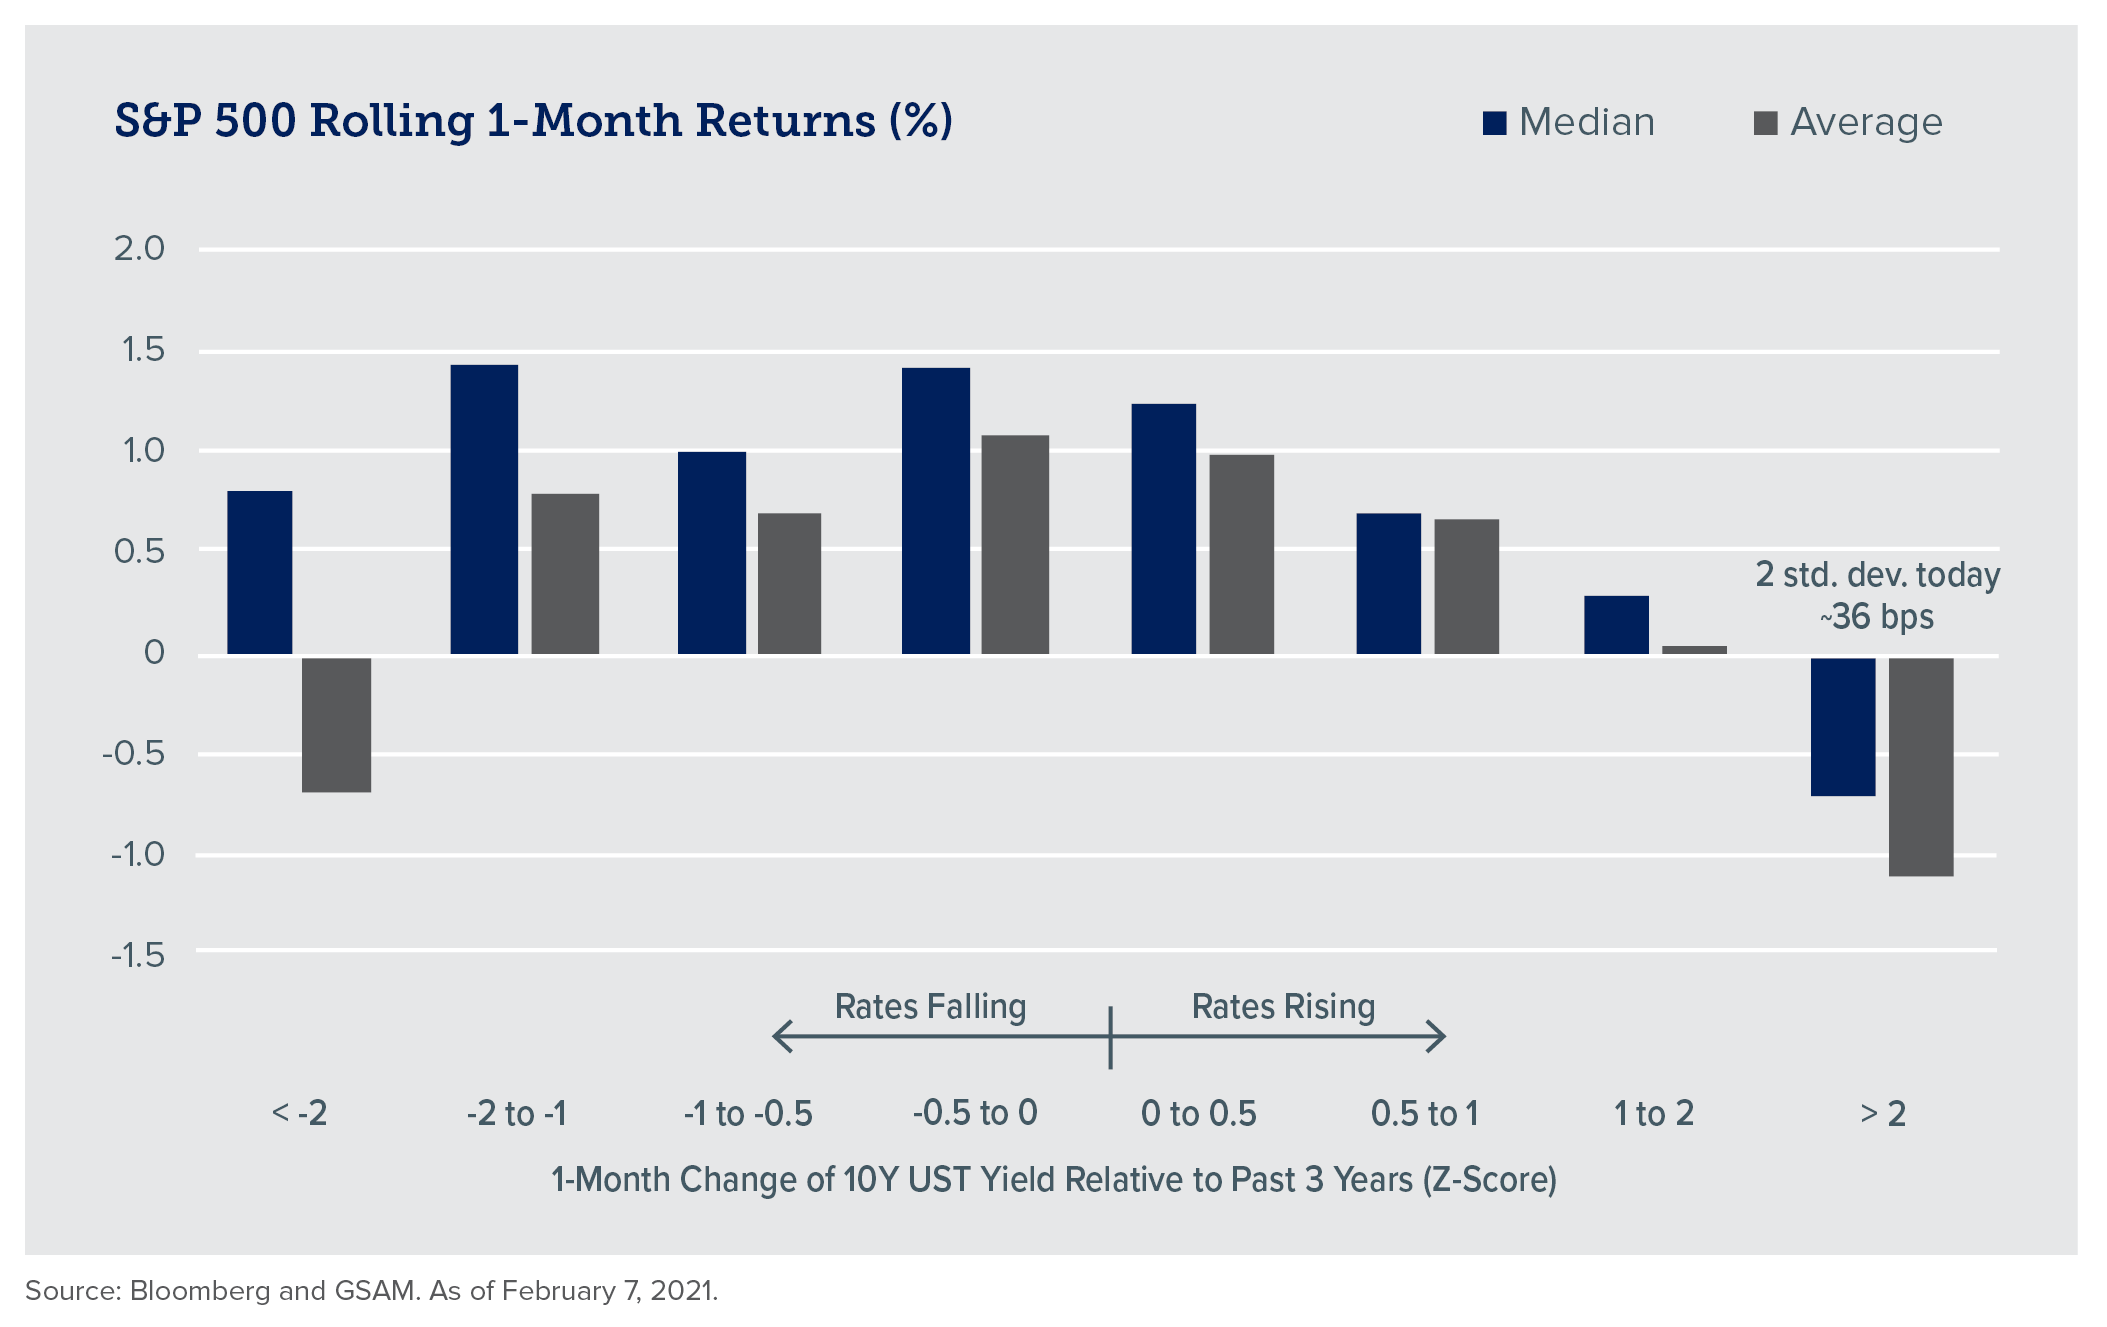 Chart - Q1 2021 SP 500 Rolling 1-Month Returns